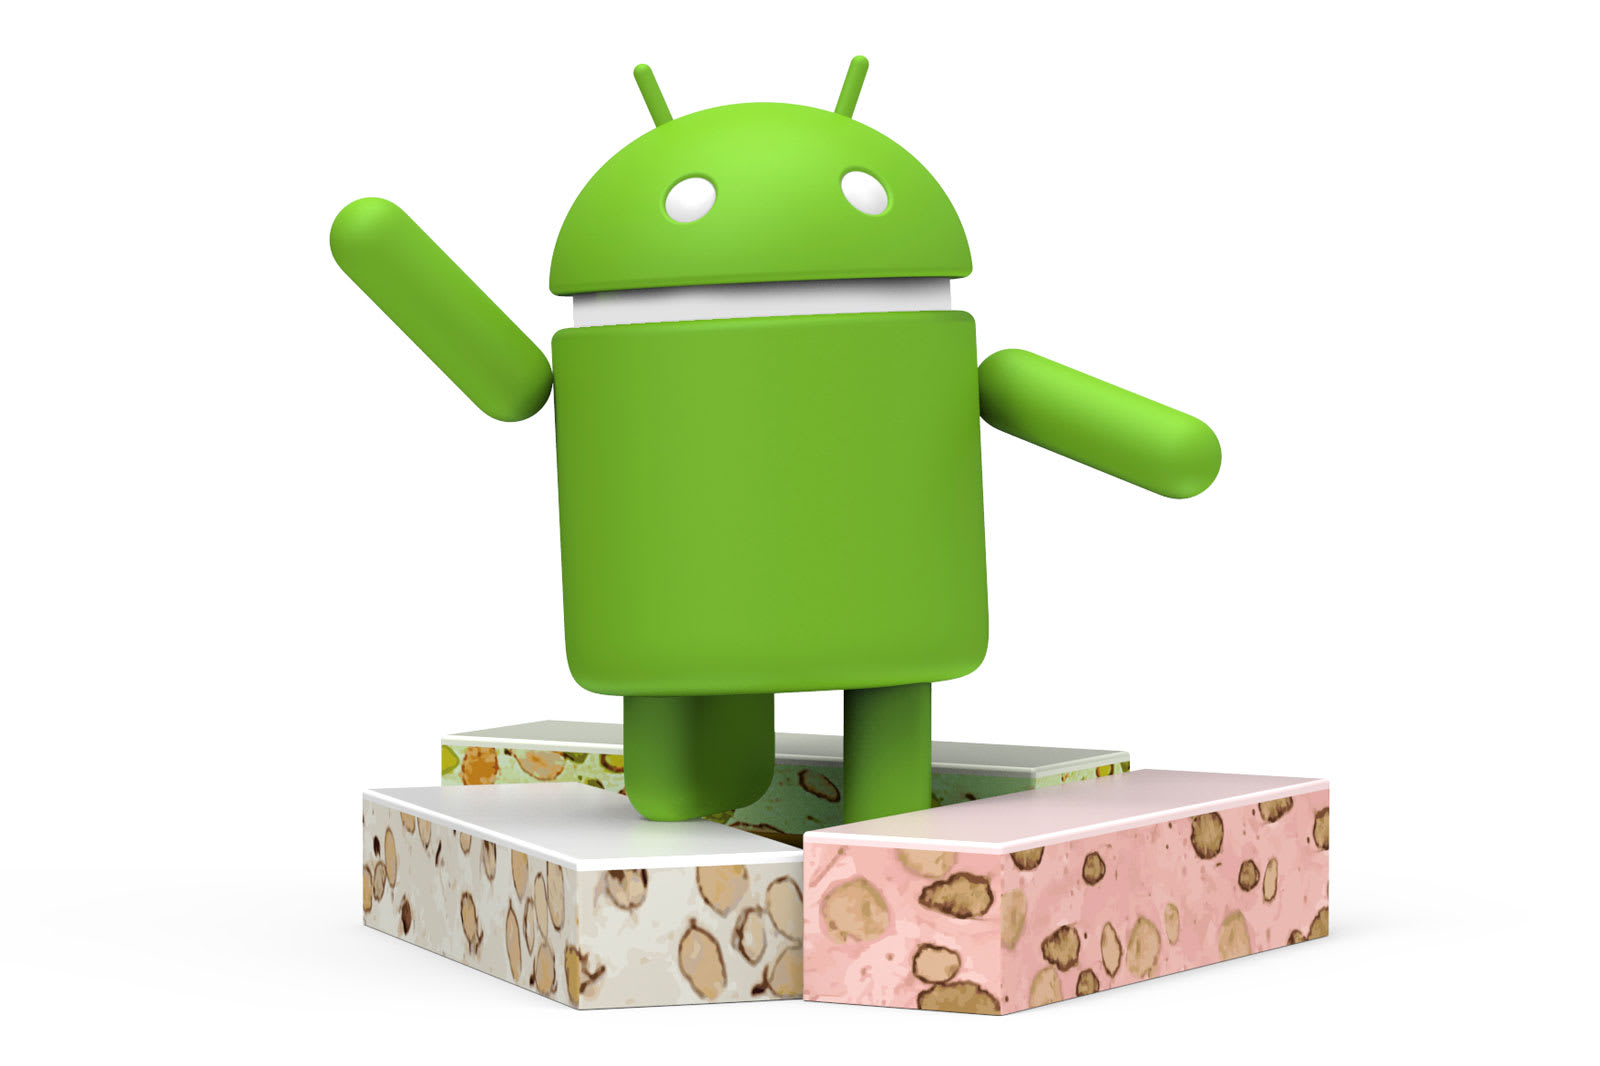 Android Nougat won't boot your phone if its software is